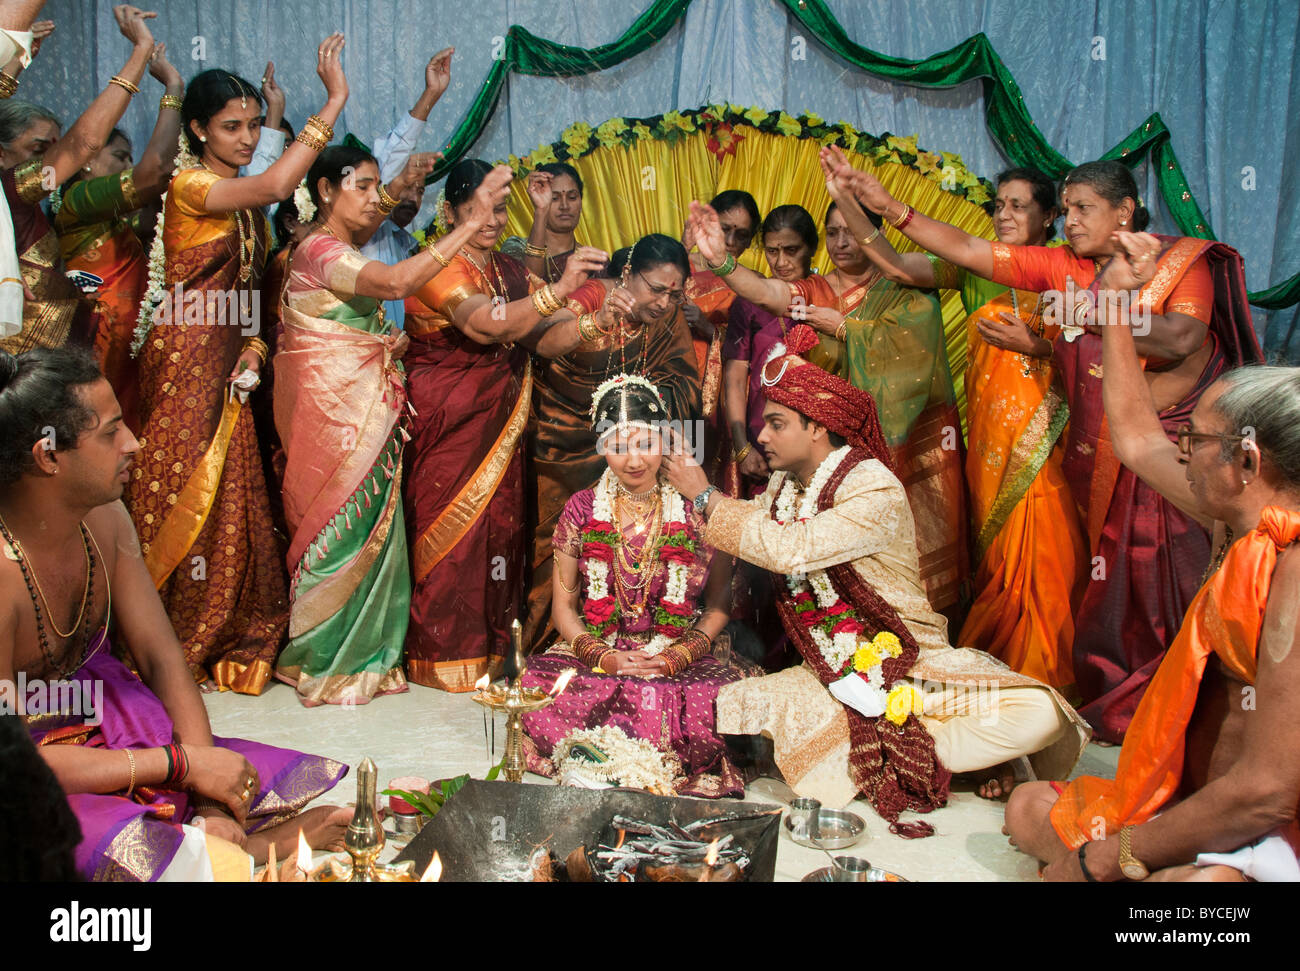 Guests throw rice grains over a newly married couple to symbolize abundance and good fortune at a Hindu wedding - Stock Image